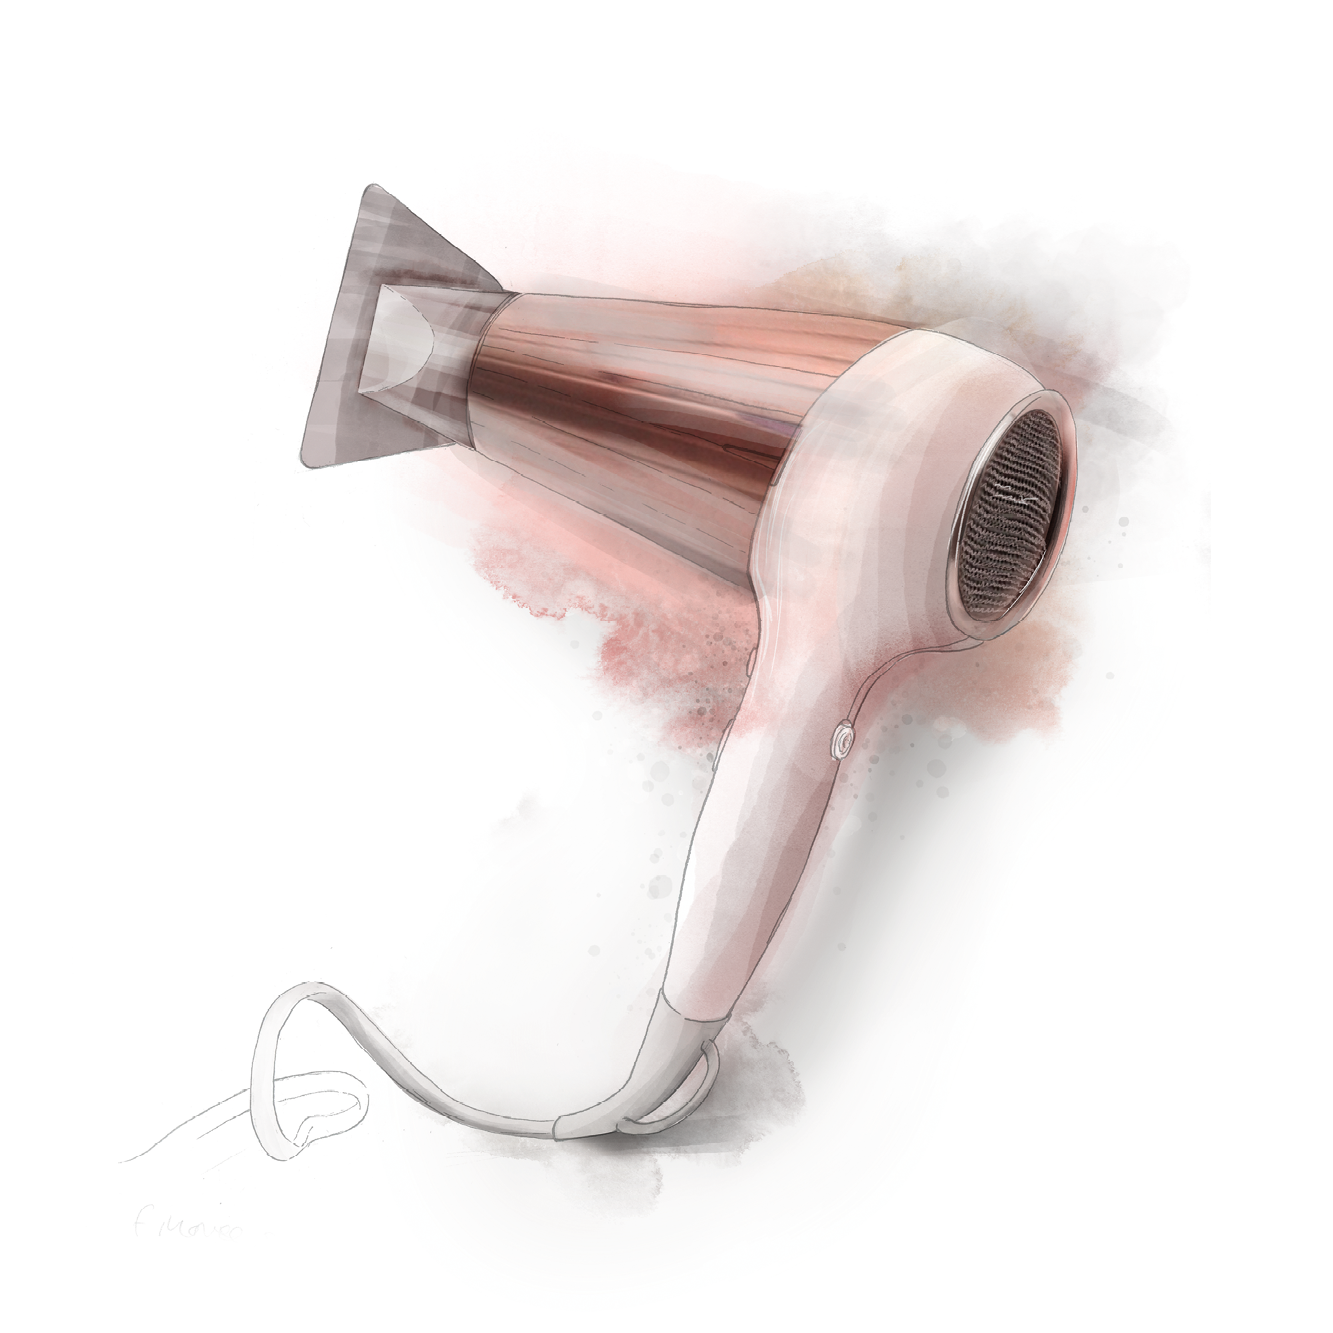 Hair-care Product Illustrations